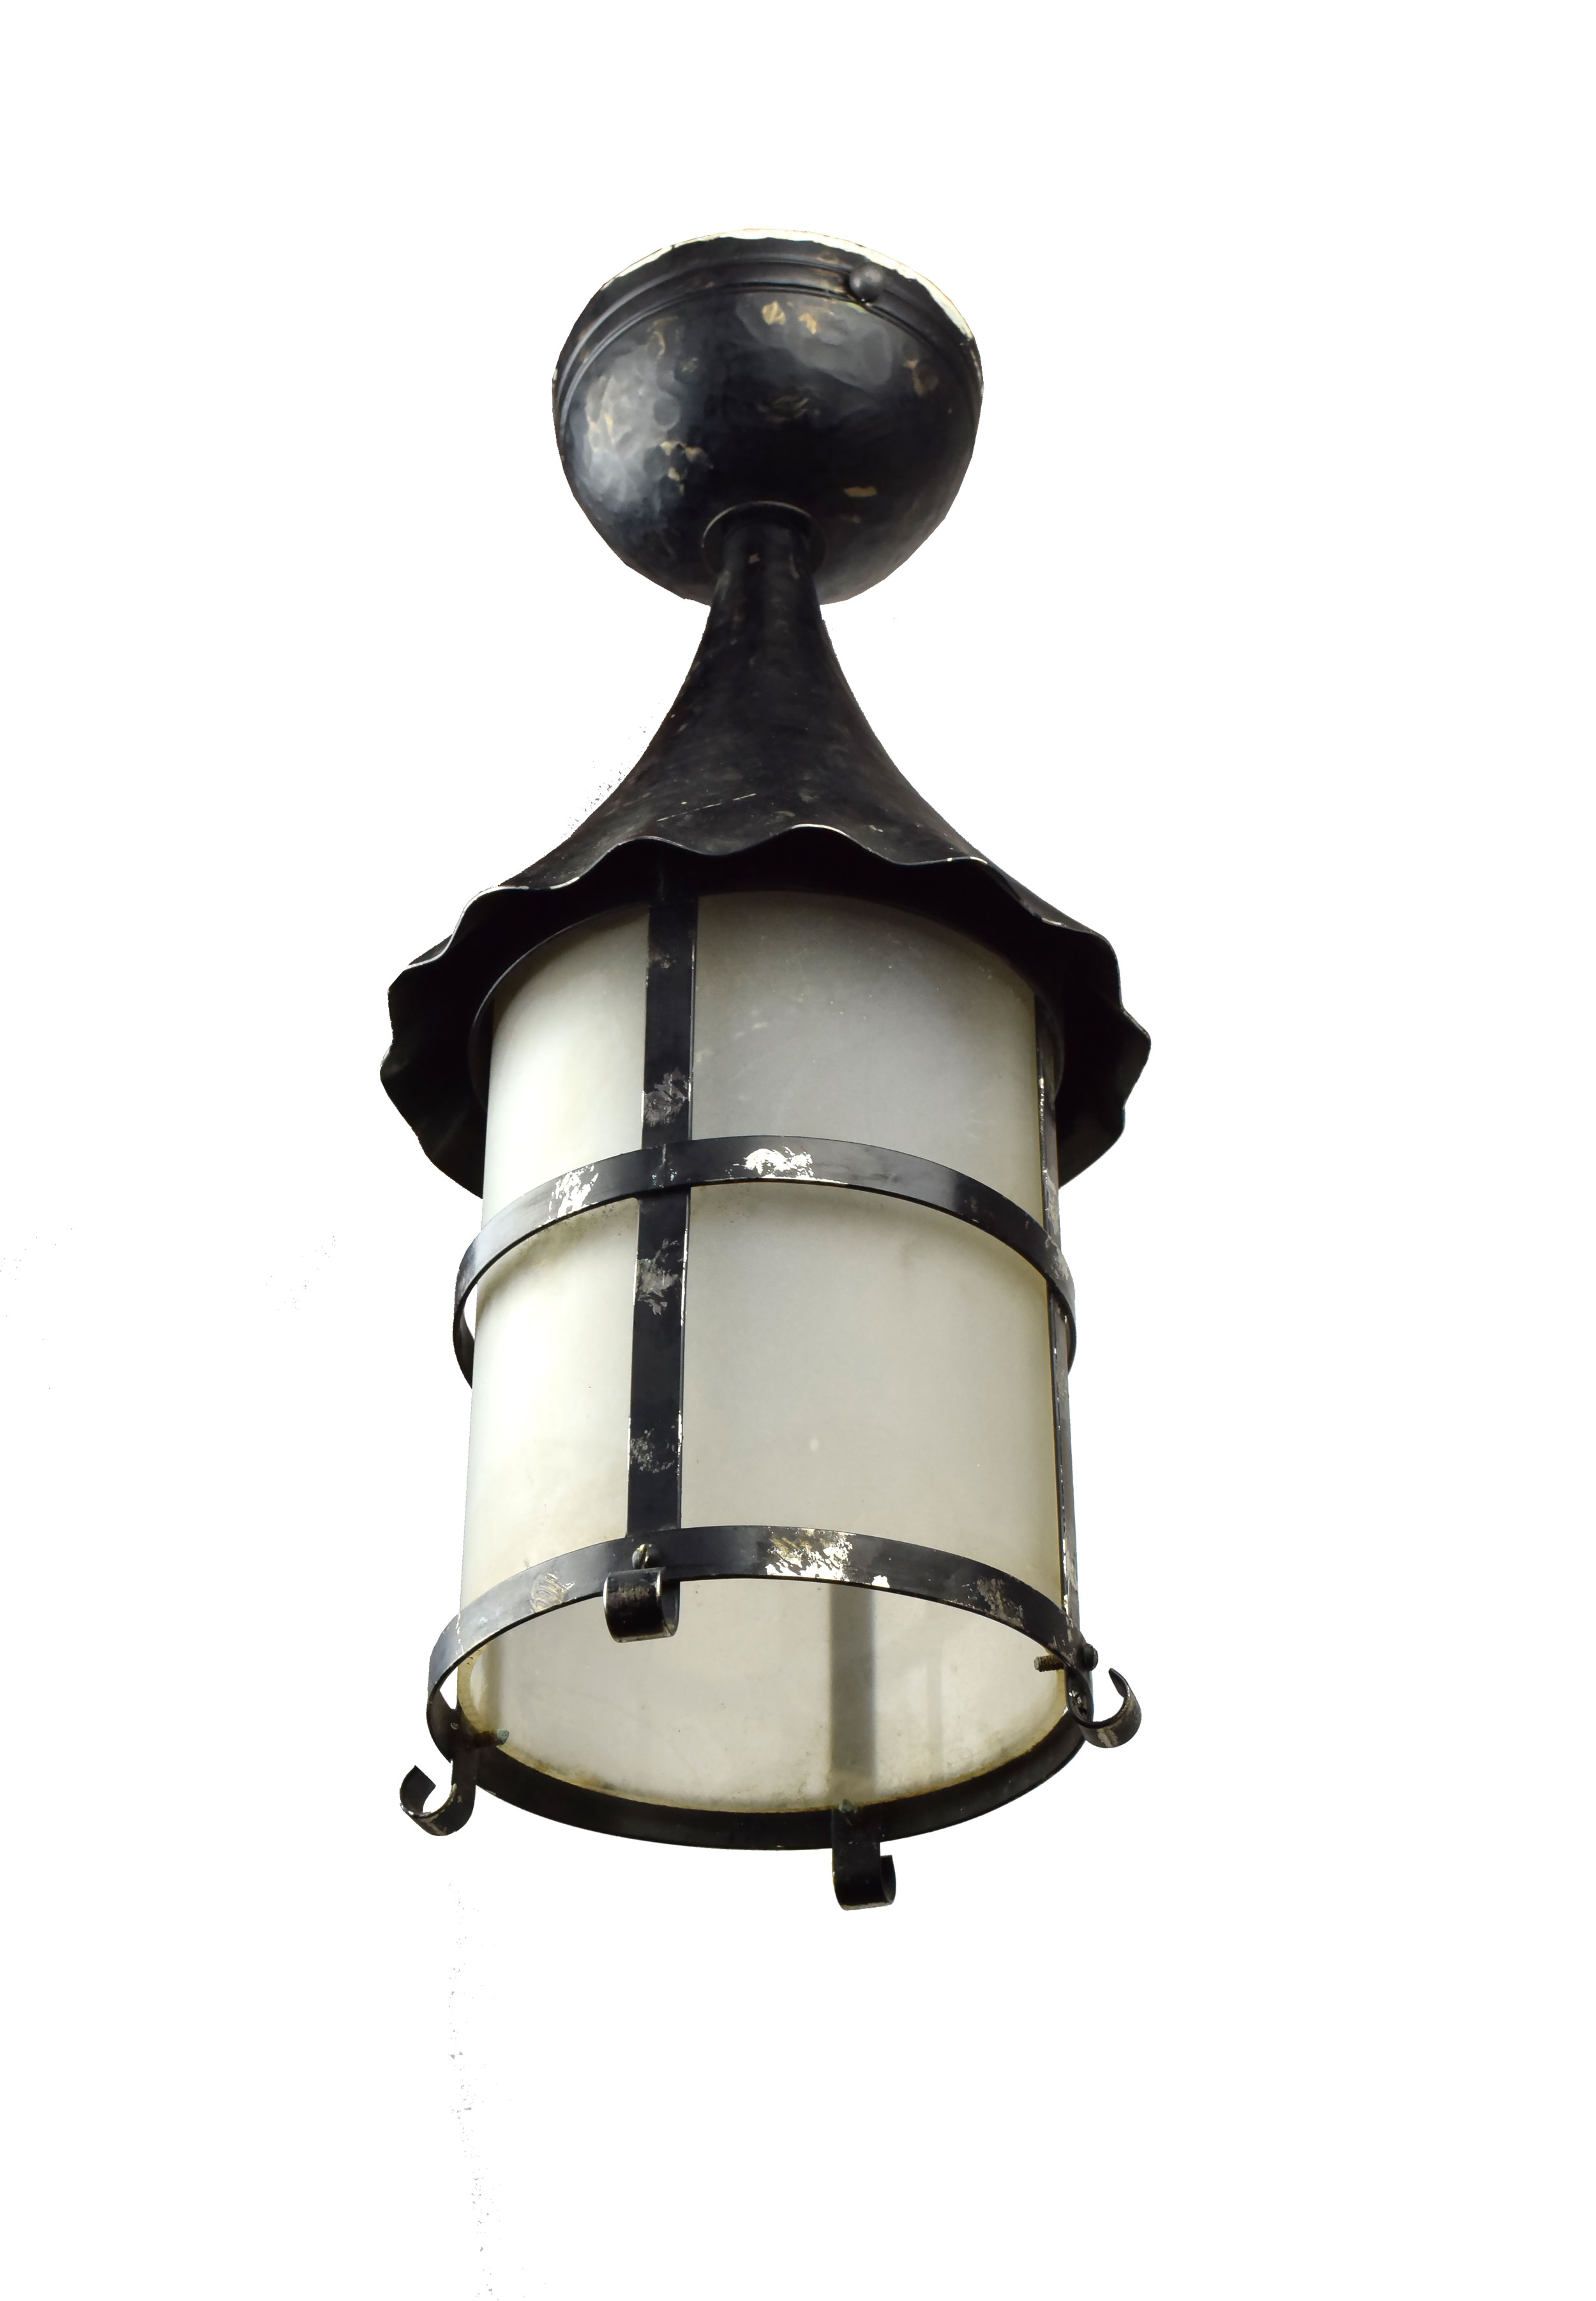 46983-aluminum-frosted-glass-lantern-low-angle.jpg